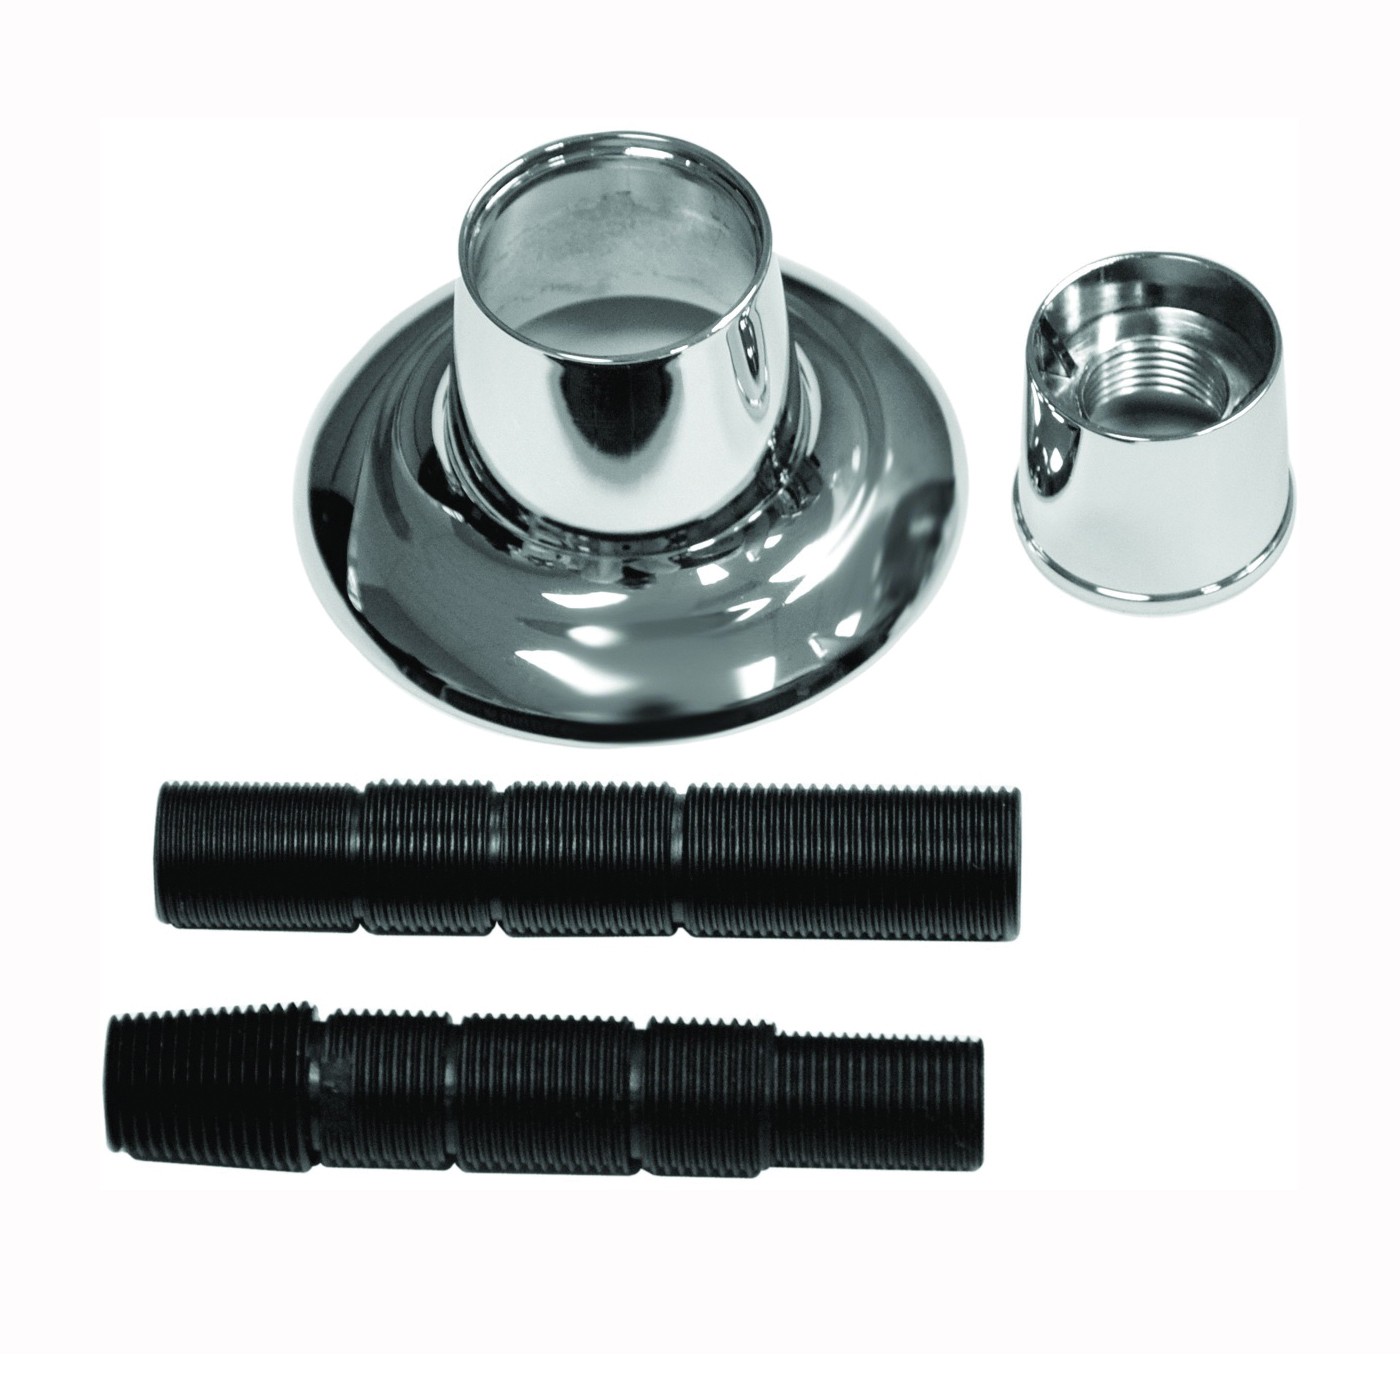 Picture of Danco 10311 Handle Flange, 1-1/8 in ID, 2-7/8 in OD, Brass/Metal/Plastic, Chrome